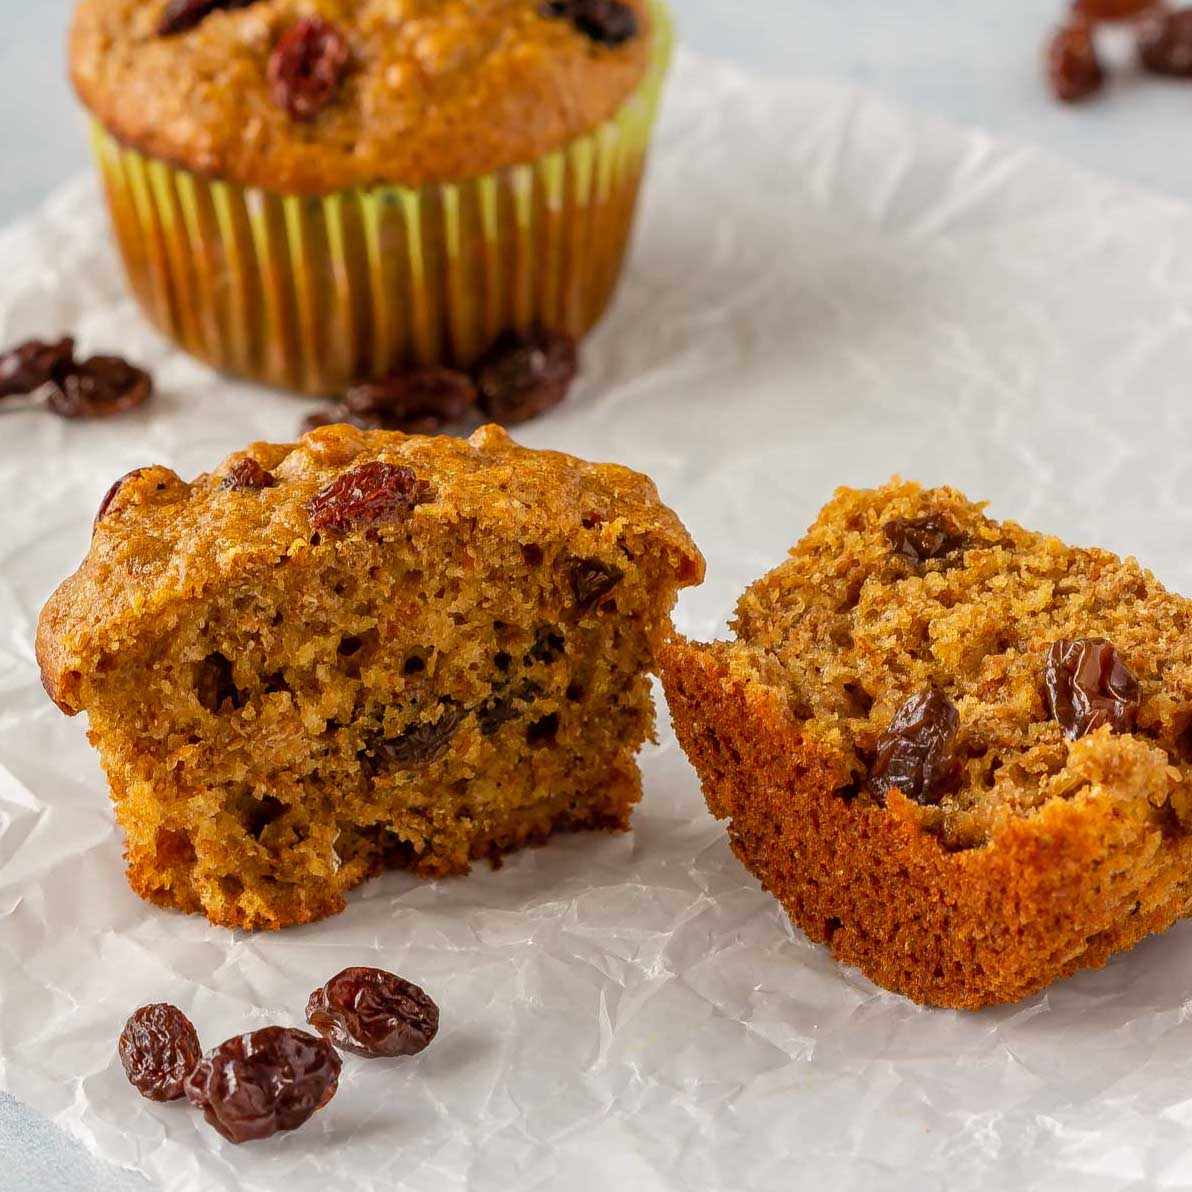 We've been enjoying these healthy refrigerator raisin bran muffins for breakfast on a regular basis lately. Filled with naturally sweet California Raisins, they keep us going all morning! #sponsored  Get the recipe: https://t.co/uuz9hiRfC0 https://t.co/O4PFX3YgT0